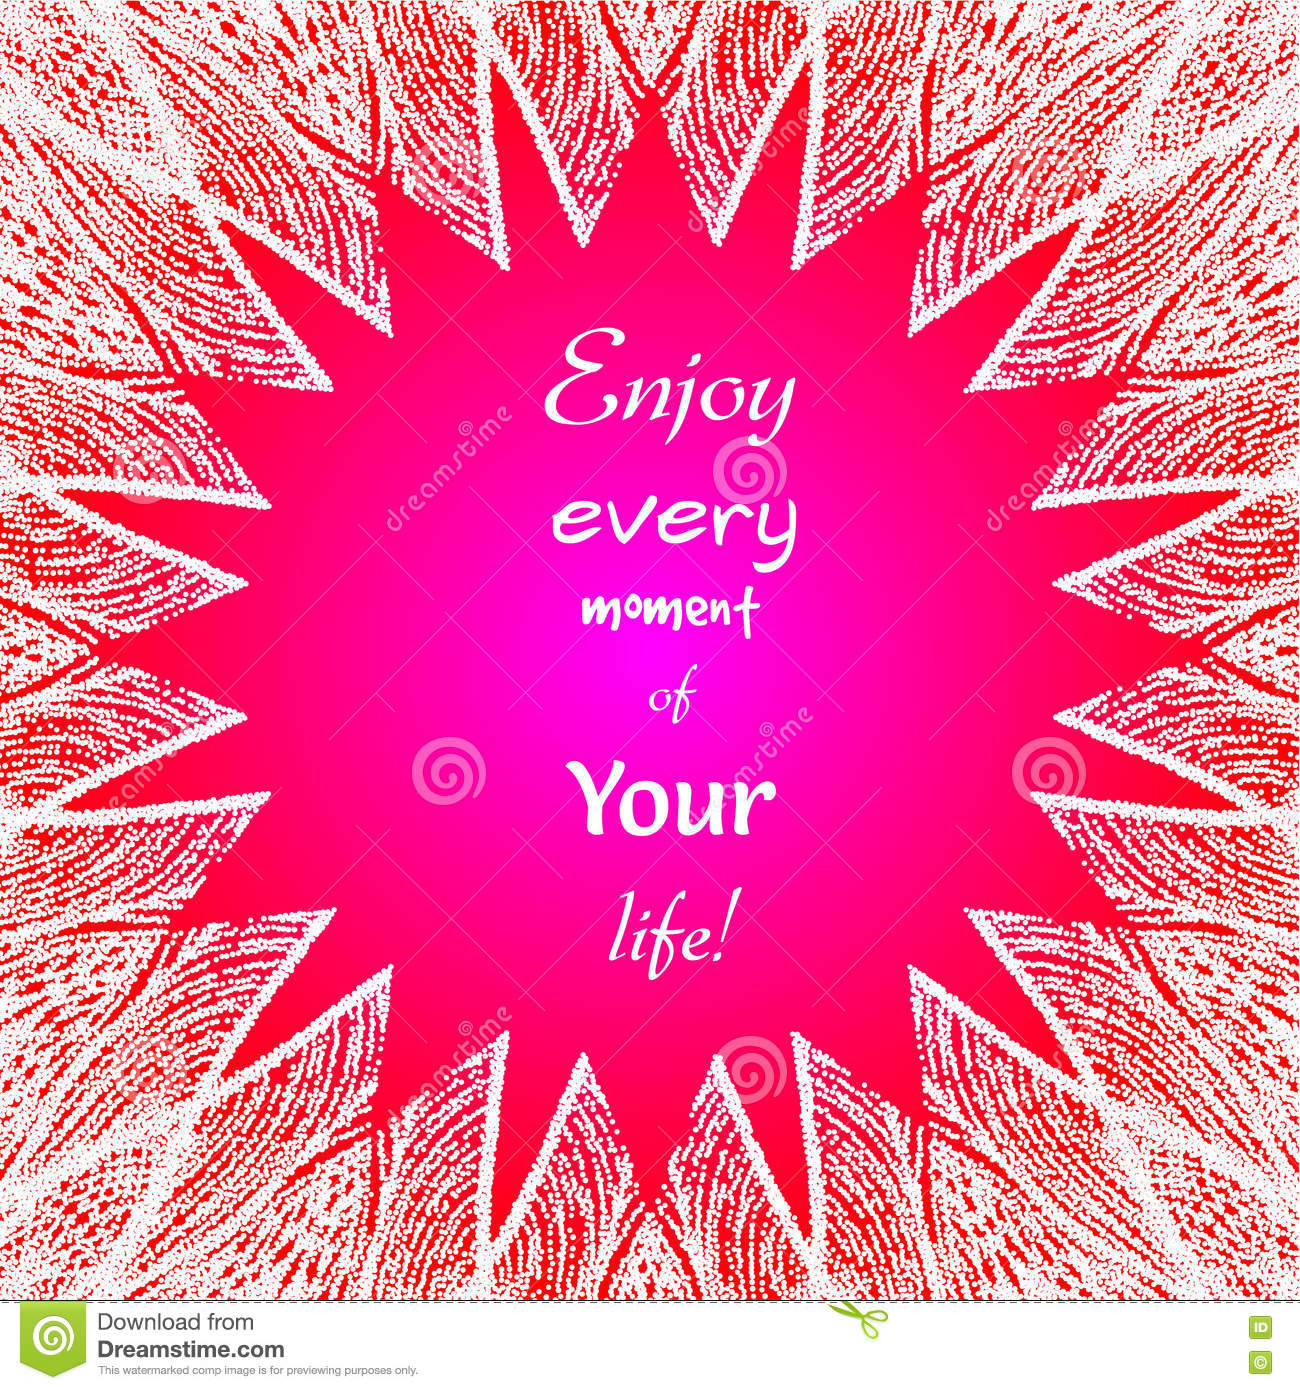 Enjoy Every Moment Of Your Life. Stock Vector - Illustration of font ...